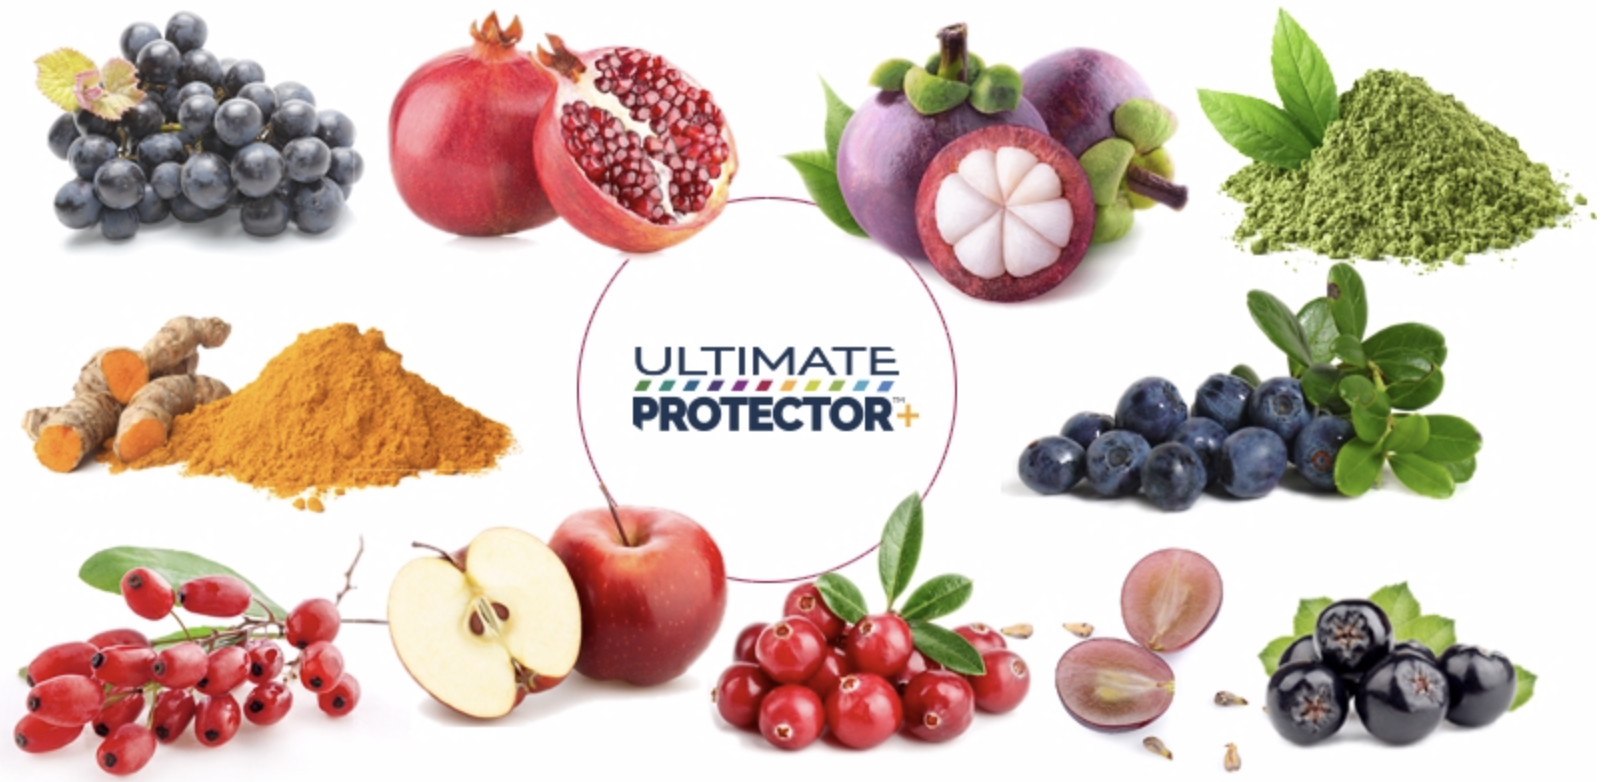 plant-based antioxidants nrf2 activators ultimate protector+